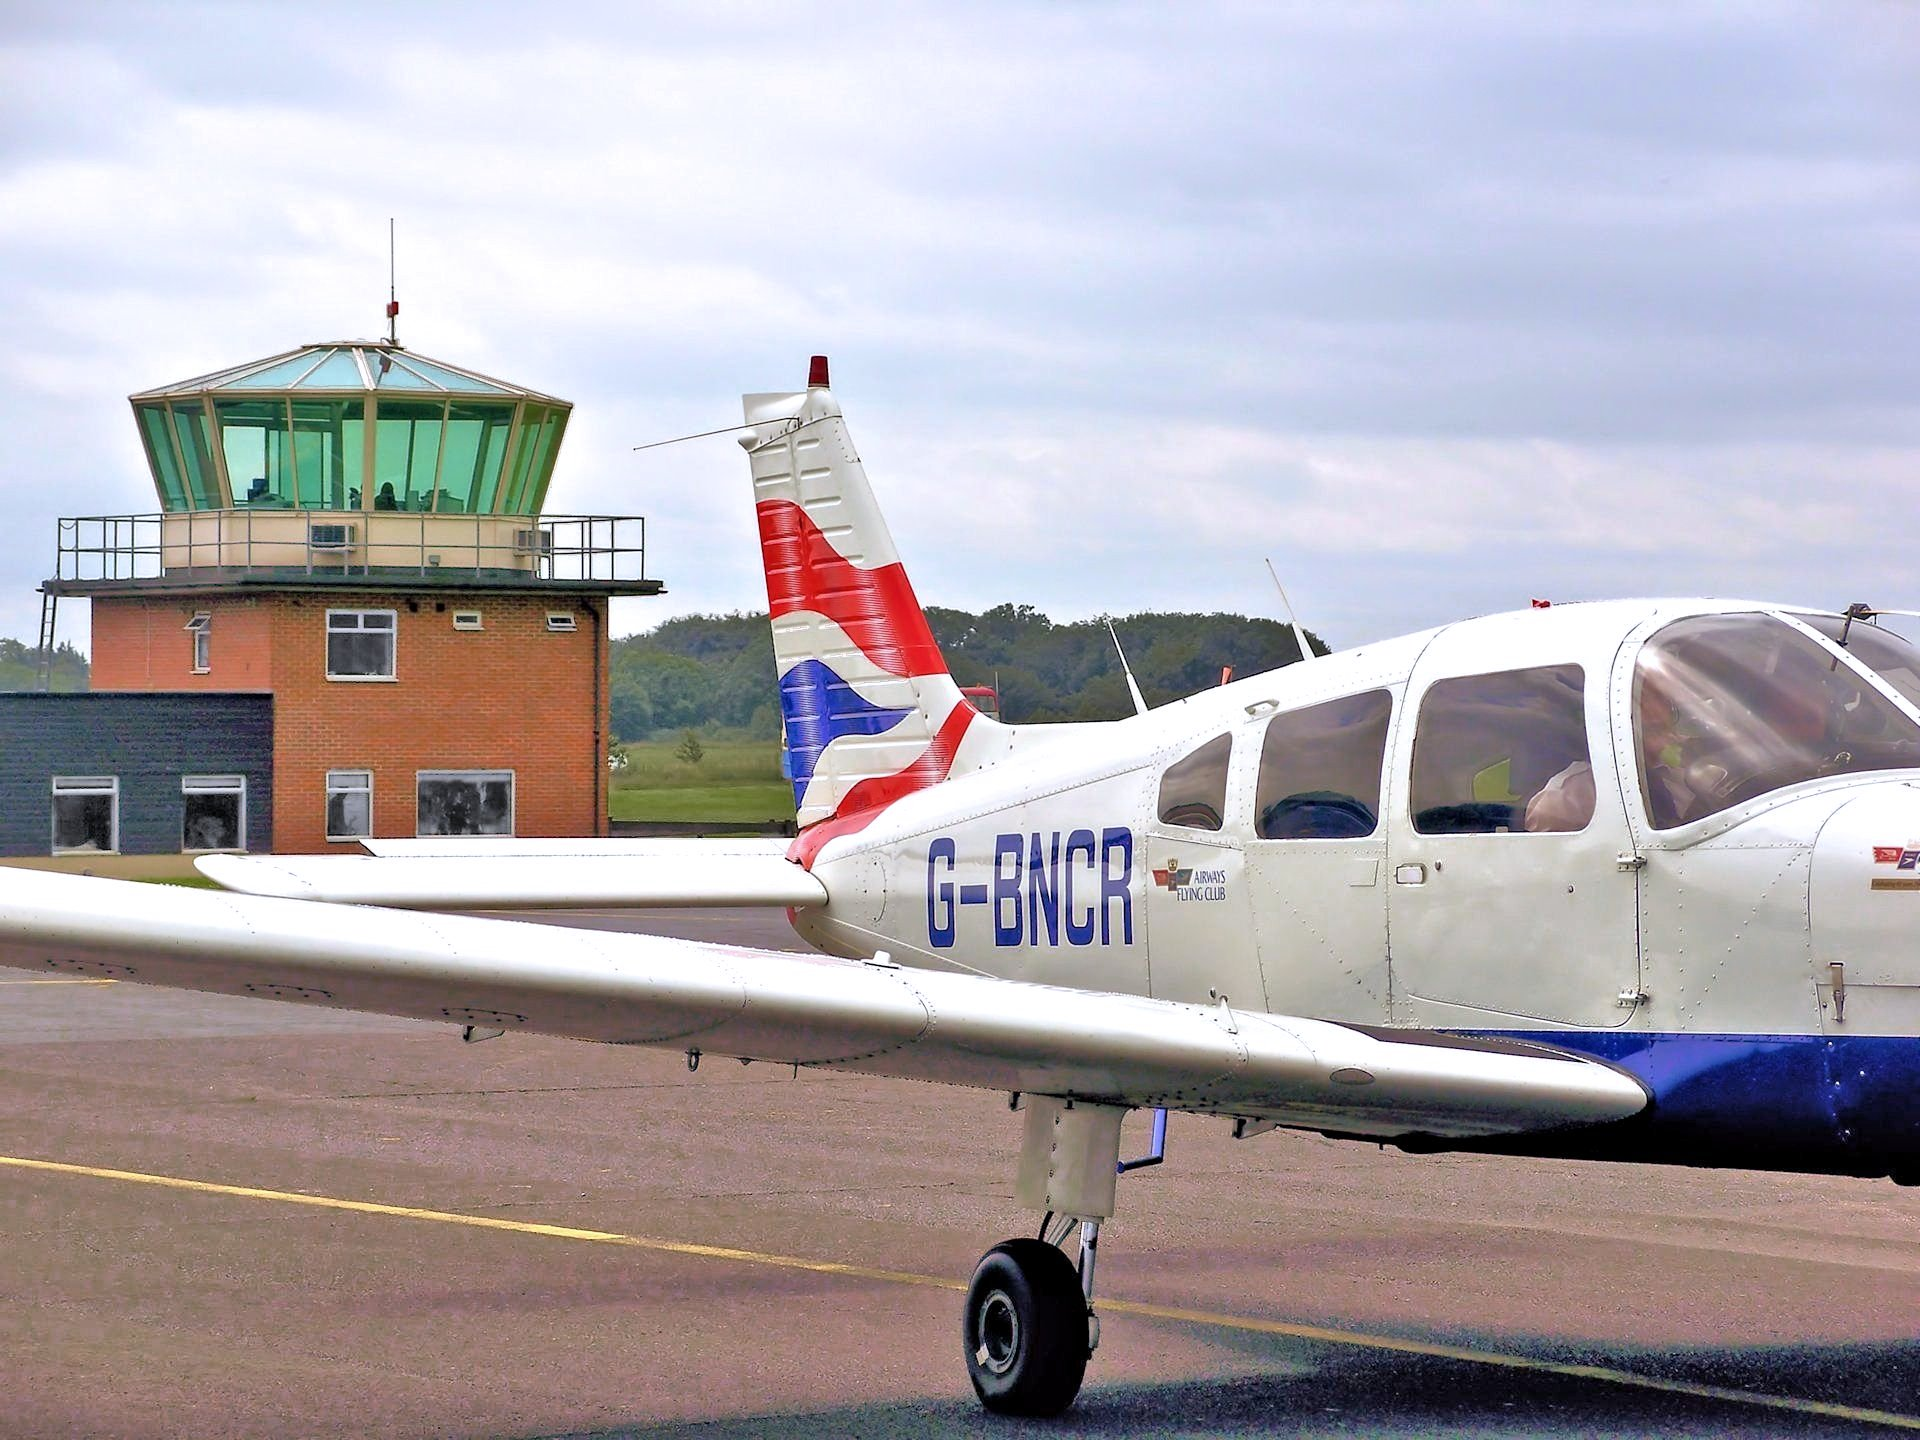 Flying Club Membership Details and Information for Aeroplanes and Helicopters